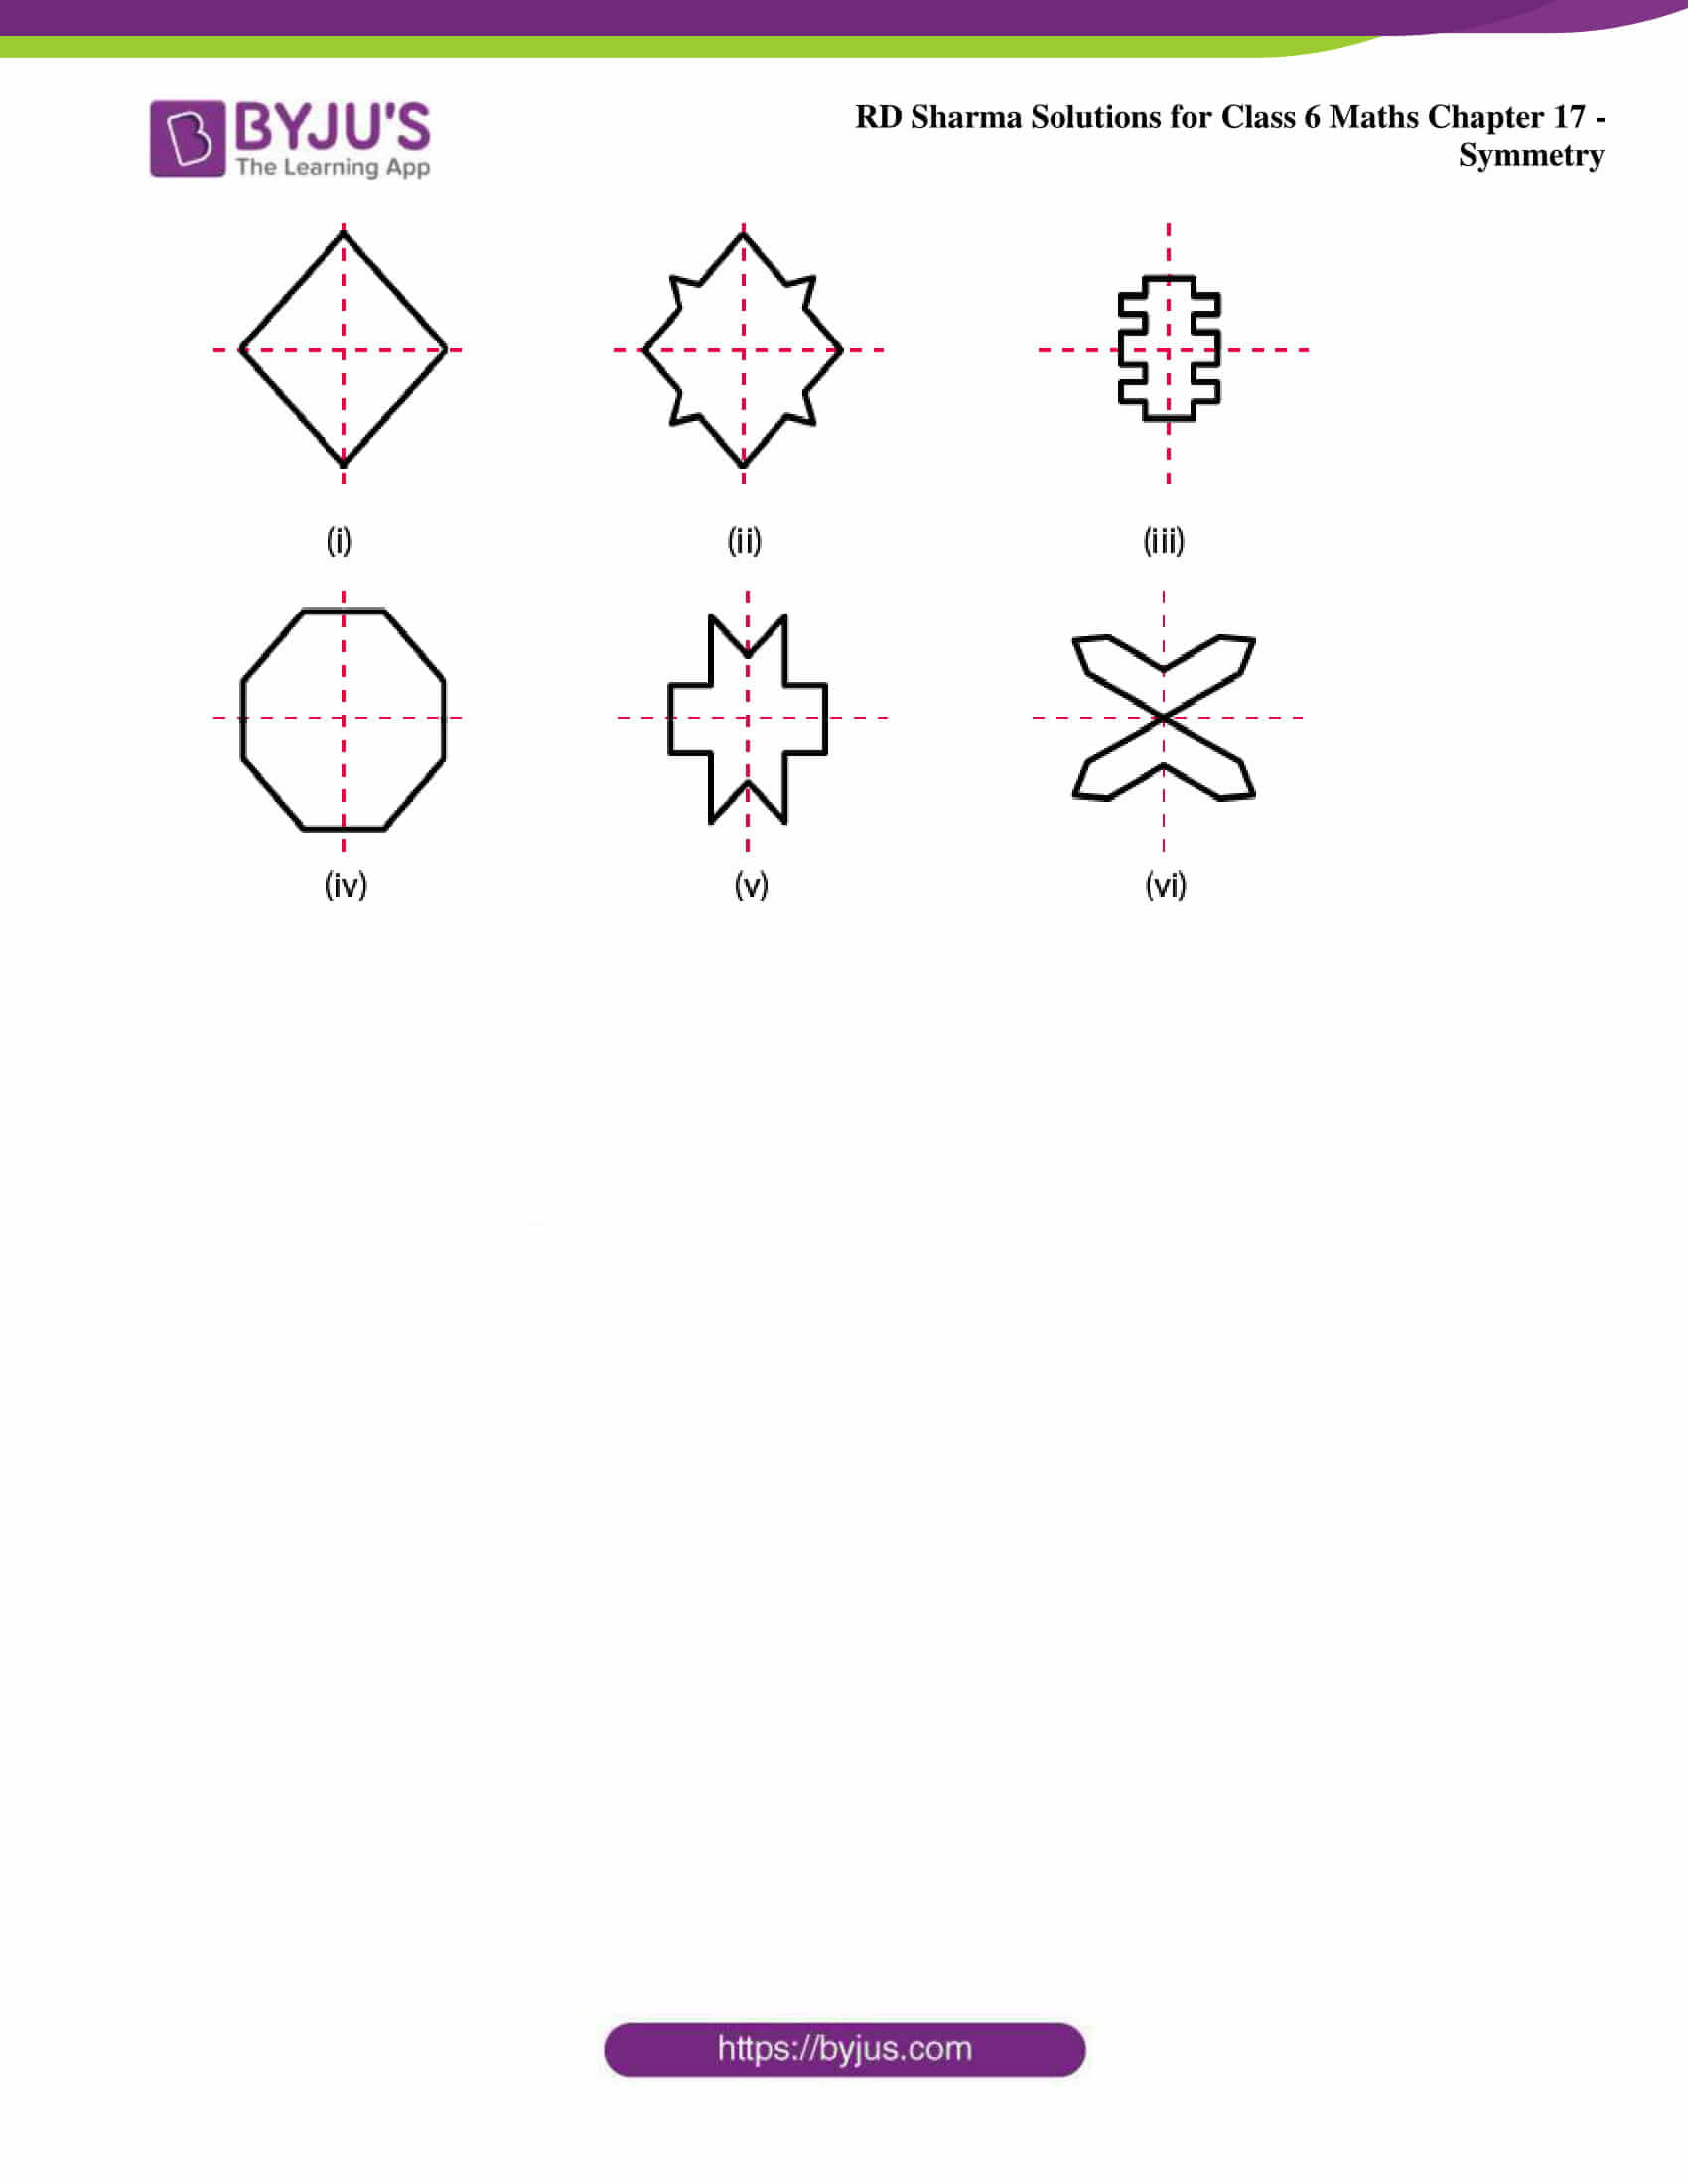 rd sharma solutions nov2020 class 6 maths chapter 17 exercise 2 2